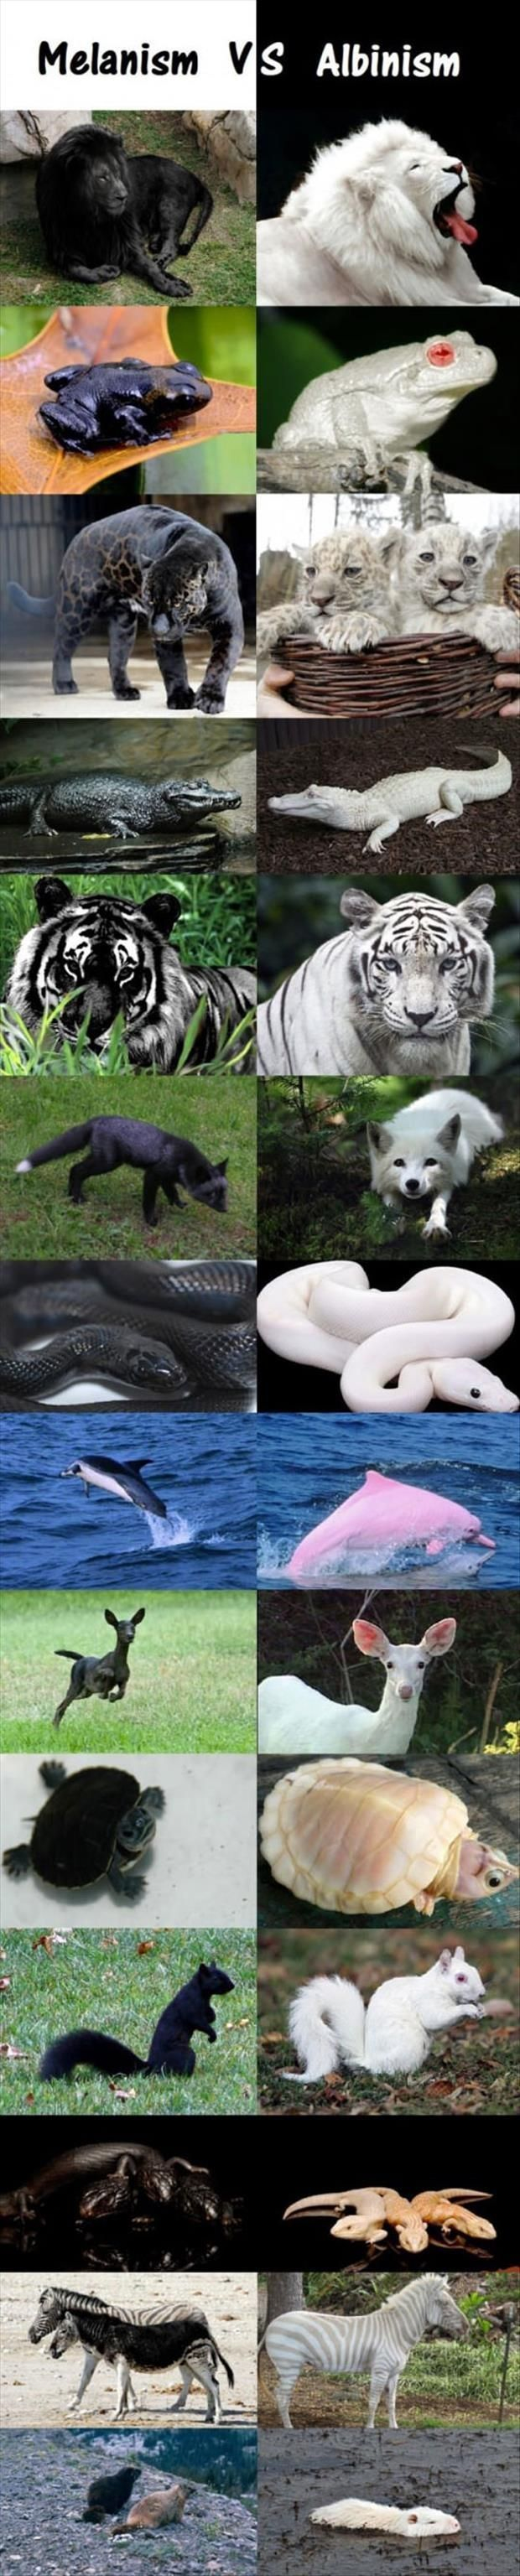 Pin By Filou Vry On The Light Of My Life Cute Animals Animals Beautiful Albino Animals